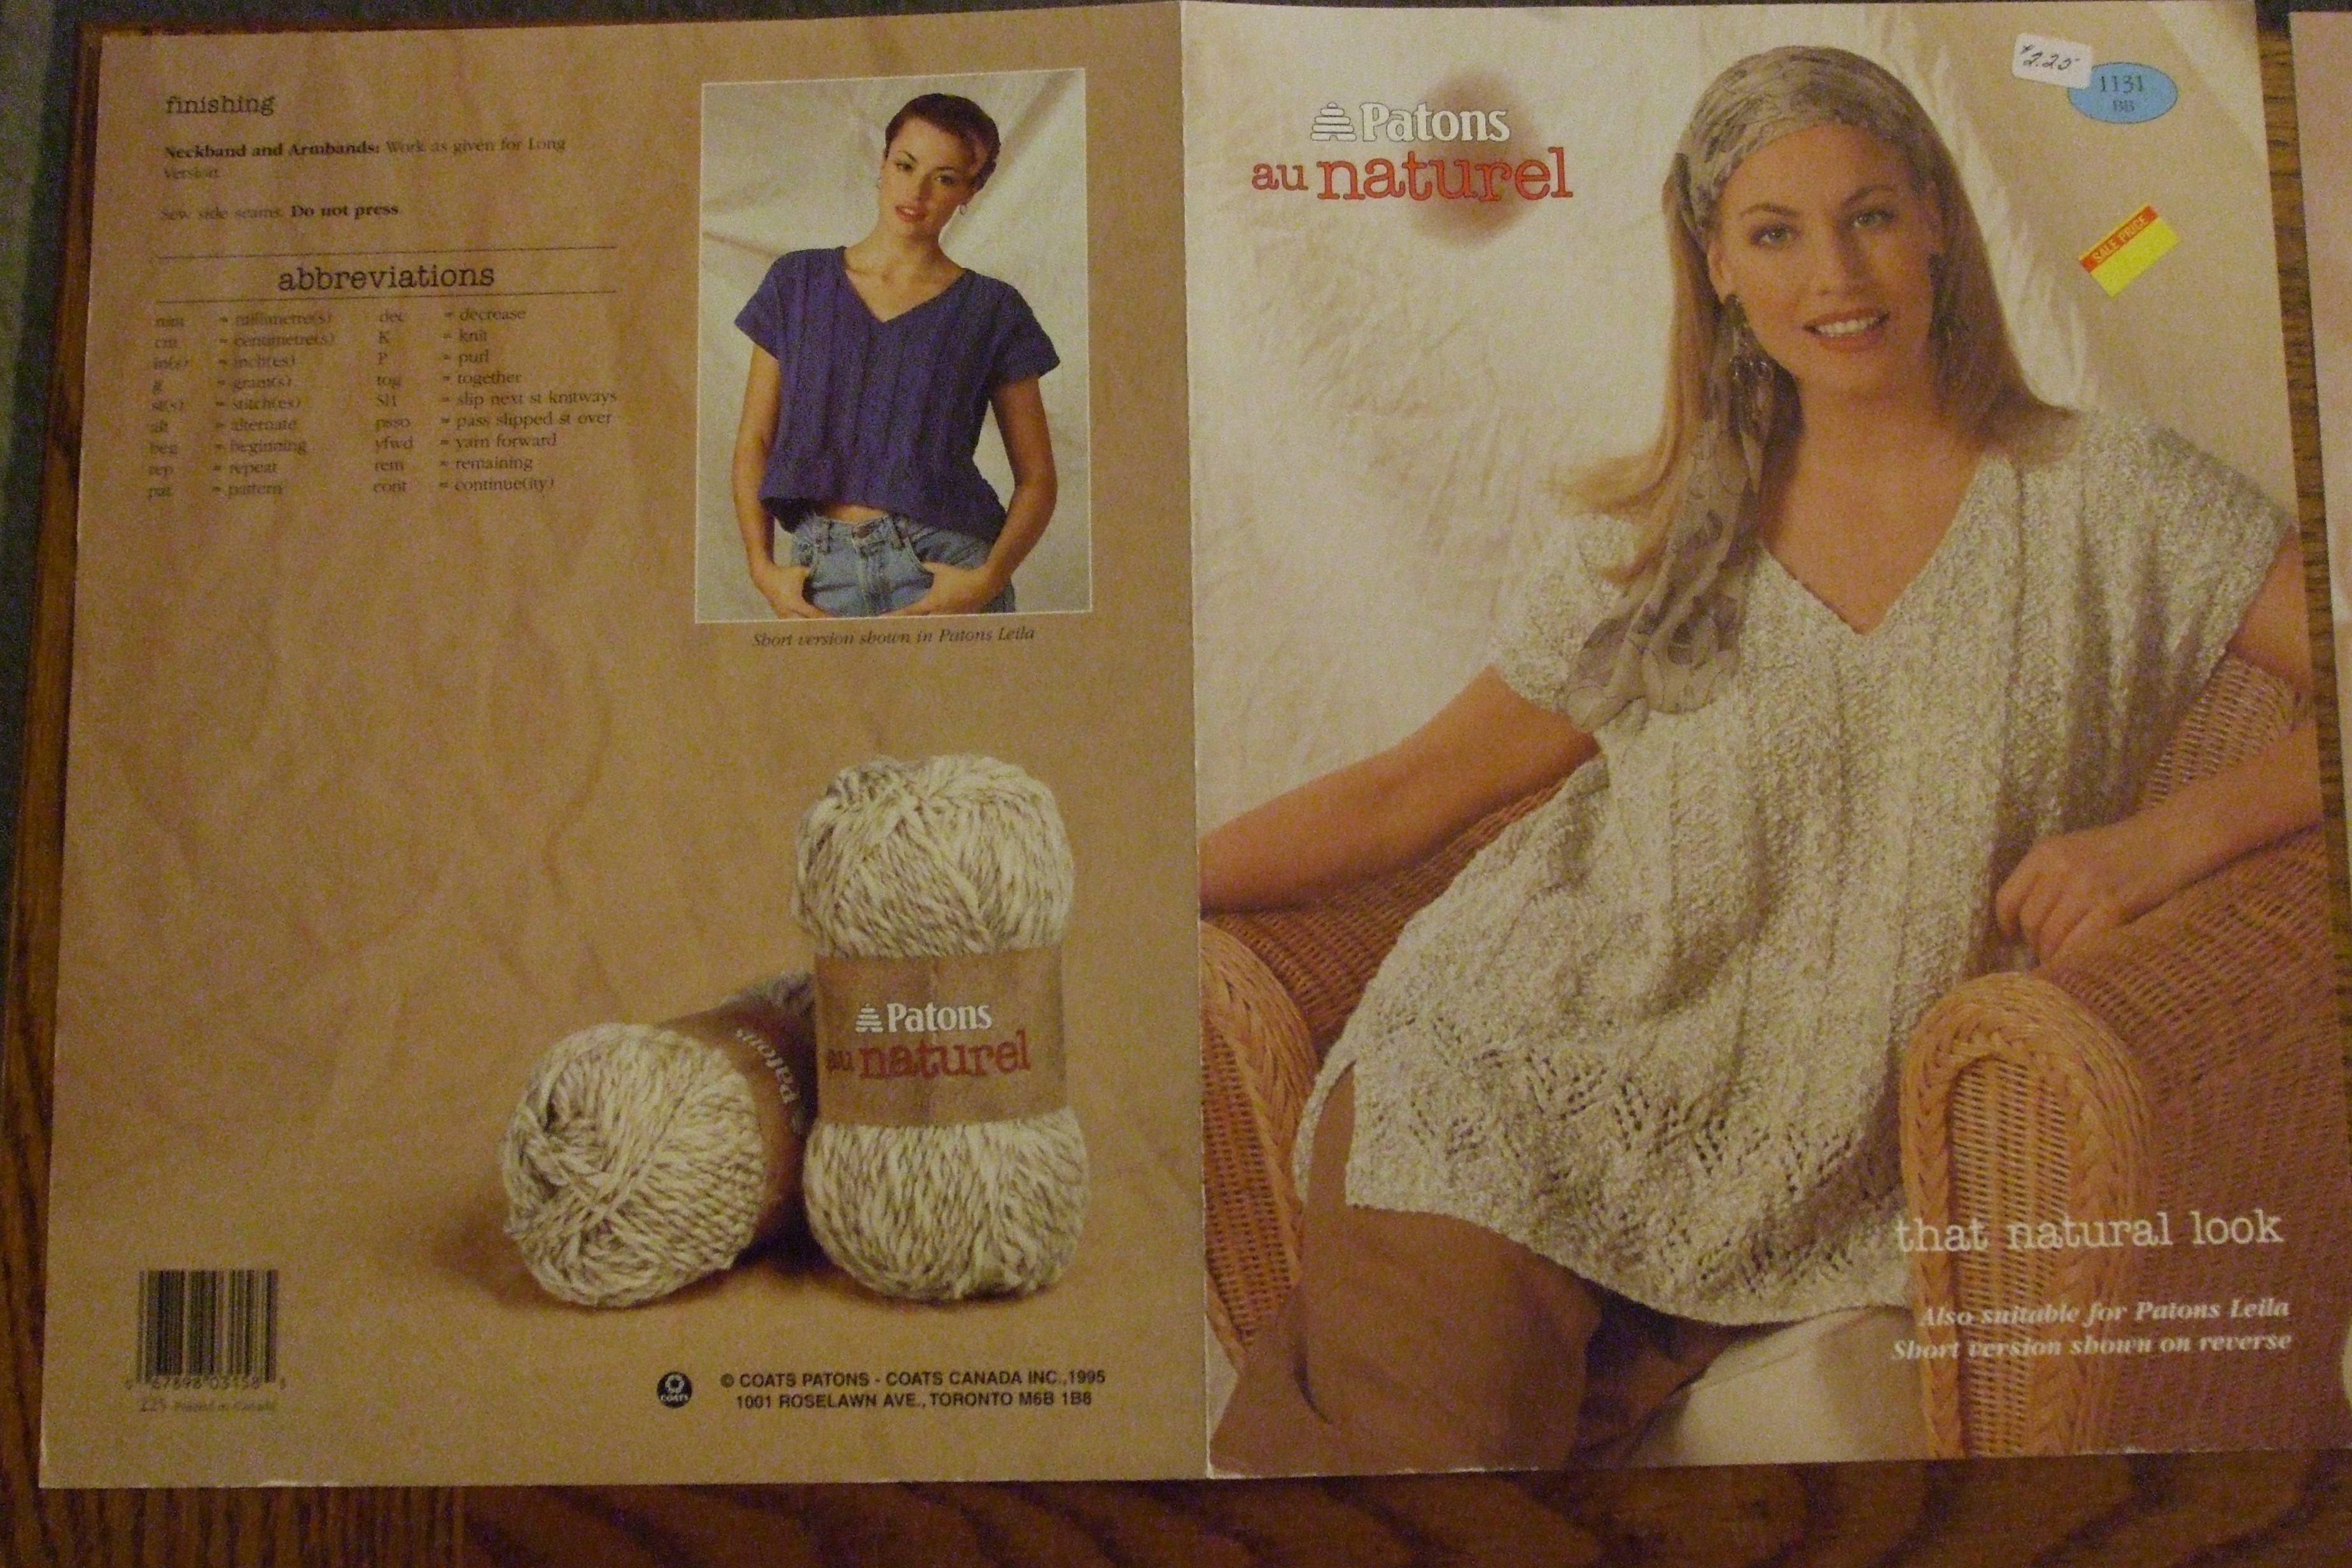 Knitted Pullover Sweater Patterns Patons Knitting Patterns Women Pullover Sweater Vest Tops Sz30 40